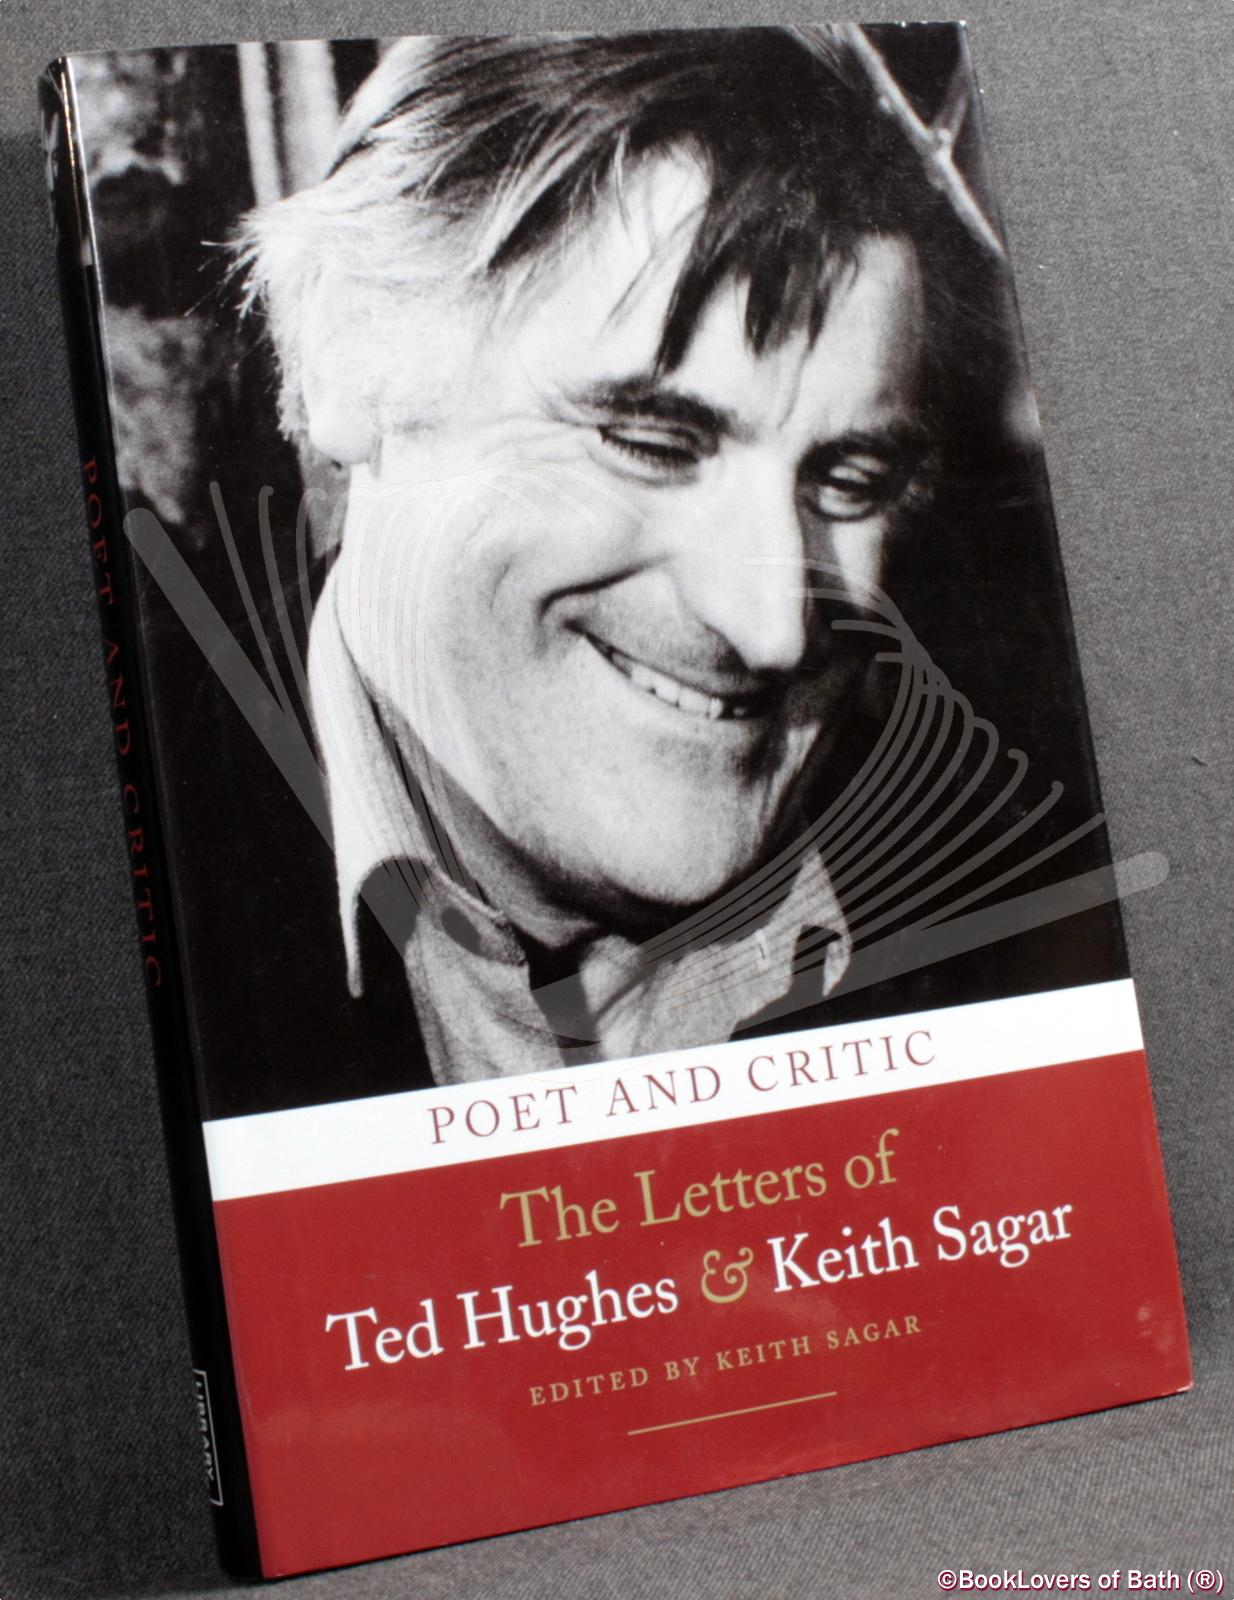 Poet and Critic: The Letters of Ted Hughes and Keith Sagar - Edited B. Keith Sagar